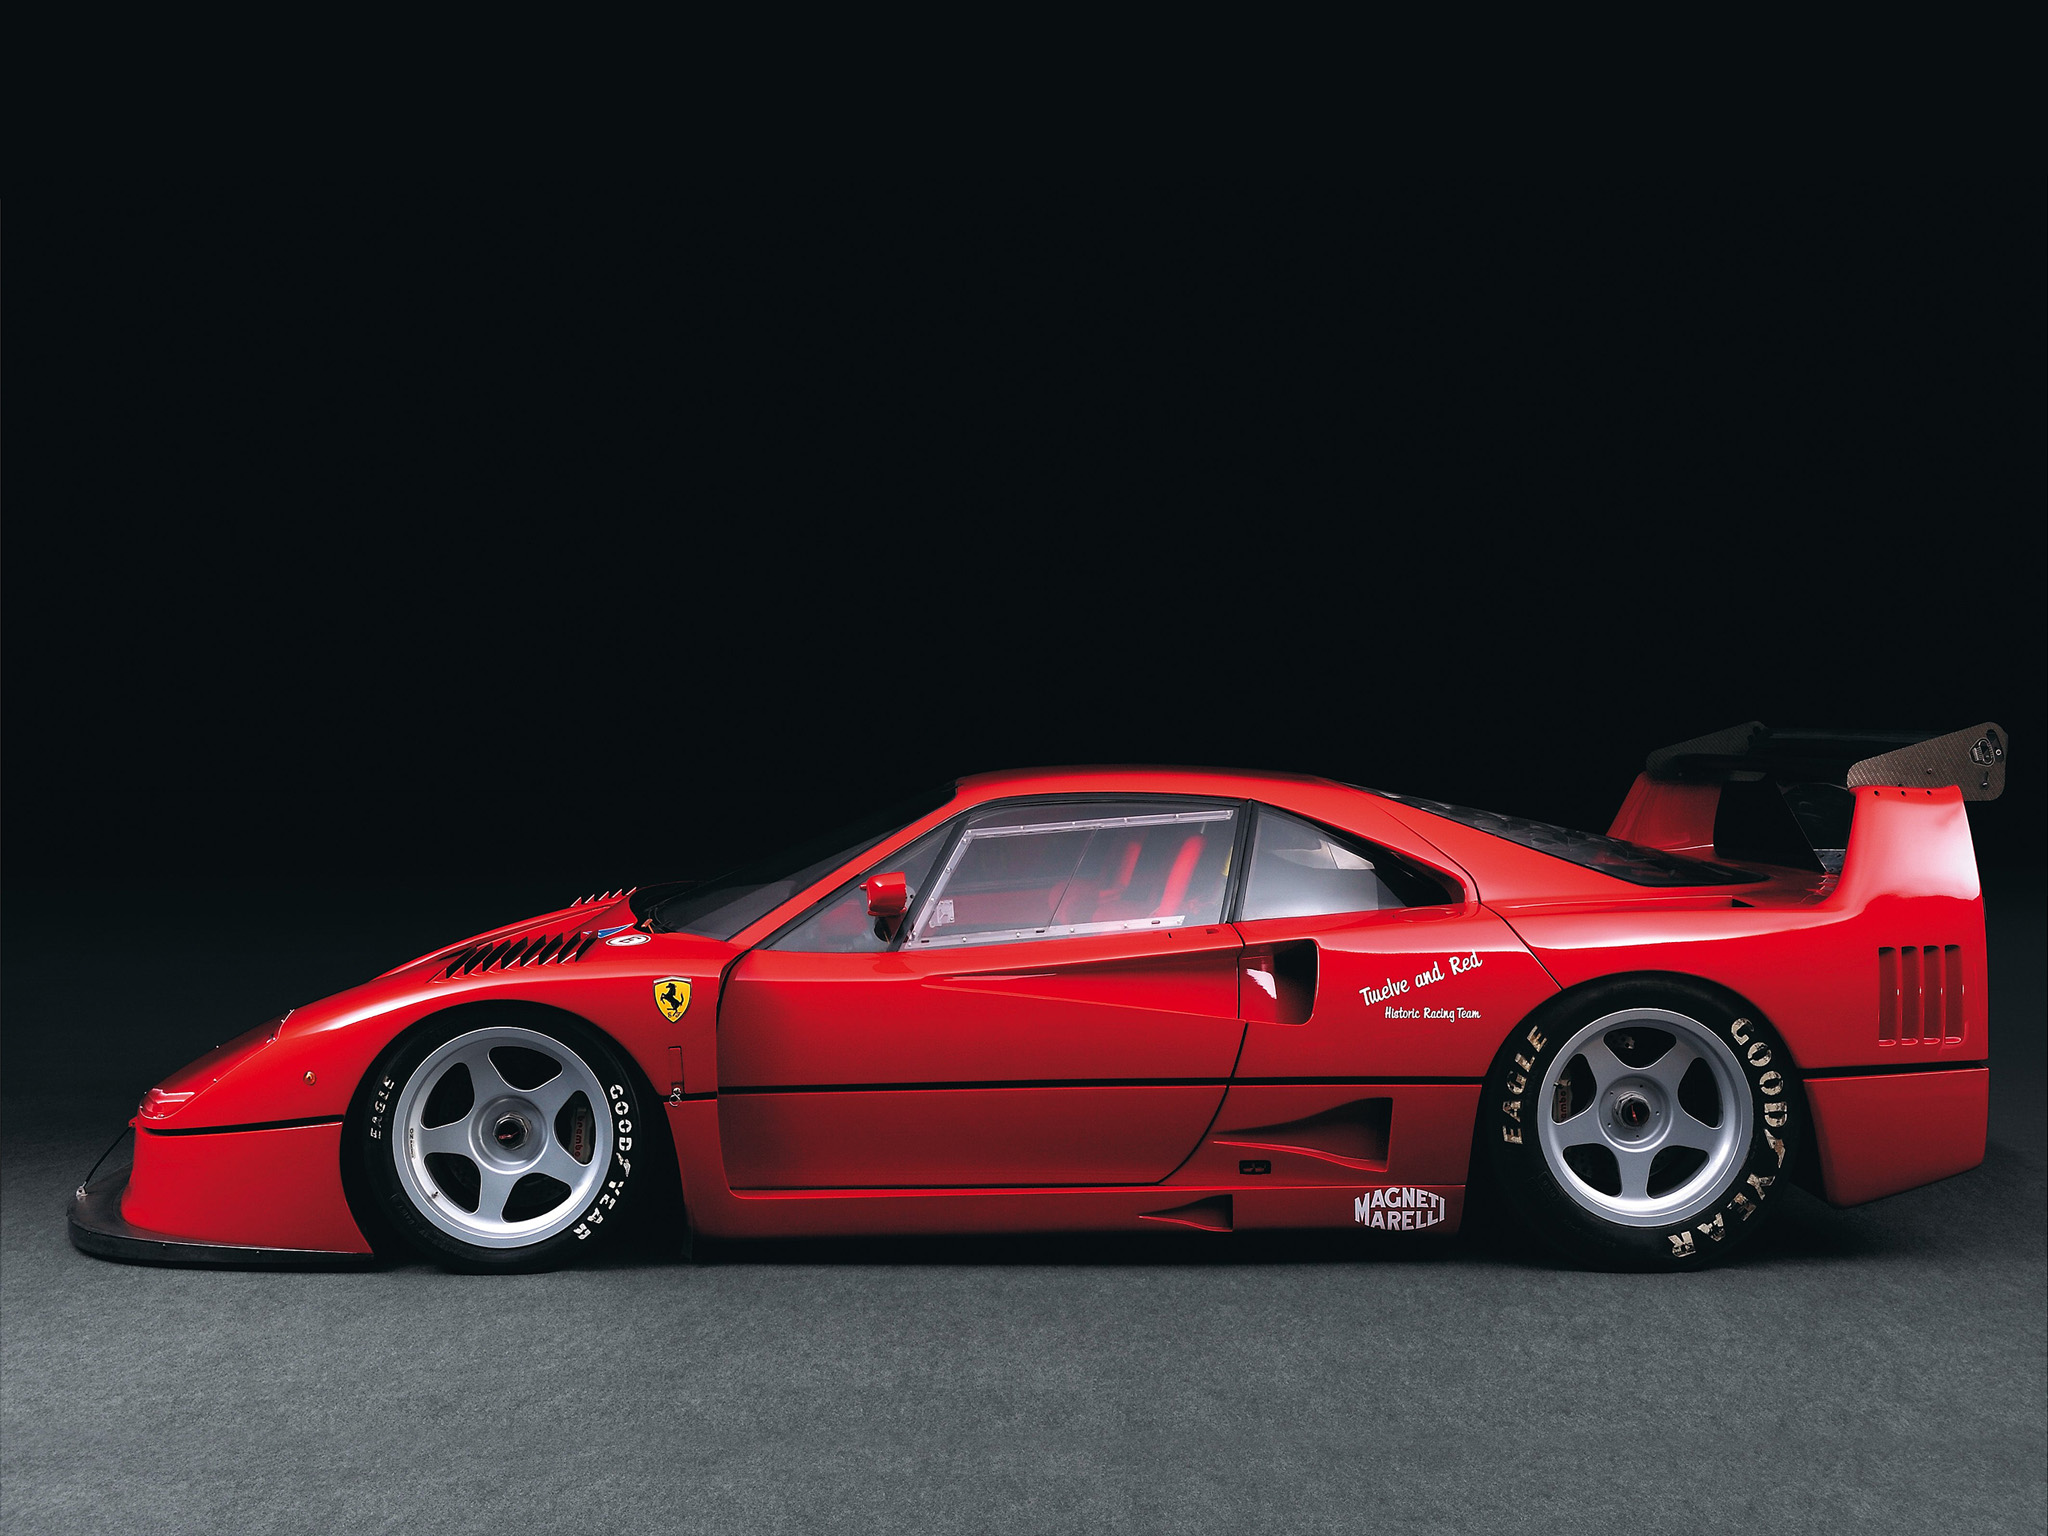 1989 ferrari f40 interior gallery hd cars wallpaper 1989 ferrari f40 interior images hd cars wallpaper 1989 ferrari f40 interior image collections hd cars wallpaper 1989 ferrari f40 interior image collections vanachro Image collections